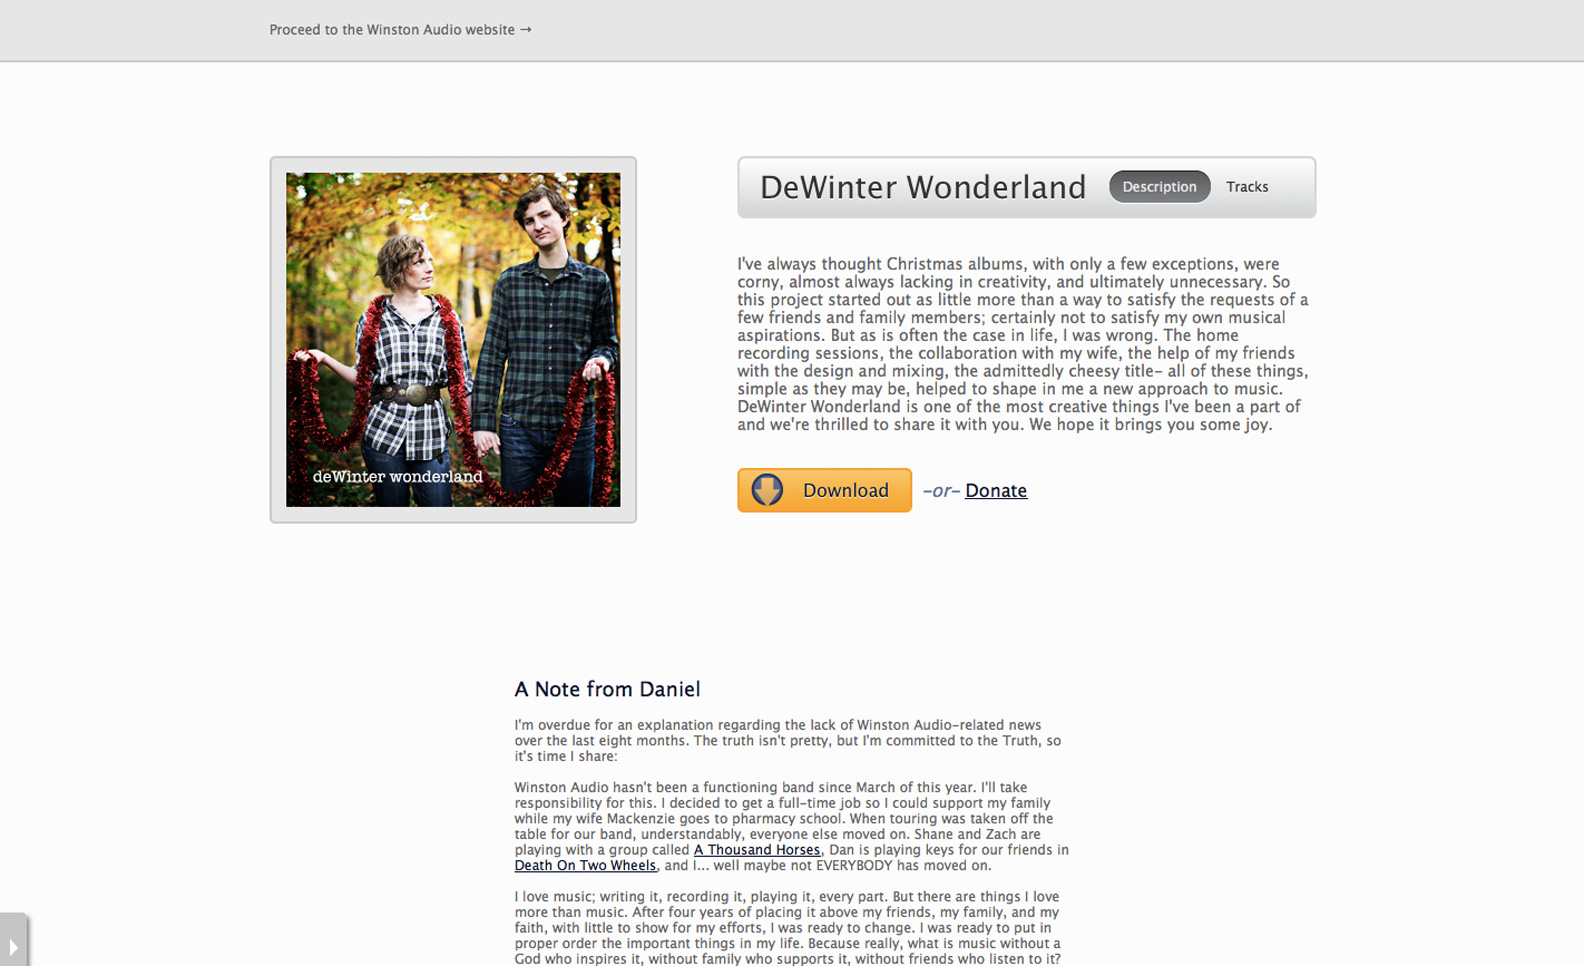 DeWinter Wonderland Landing Page Screenshot